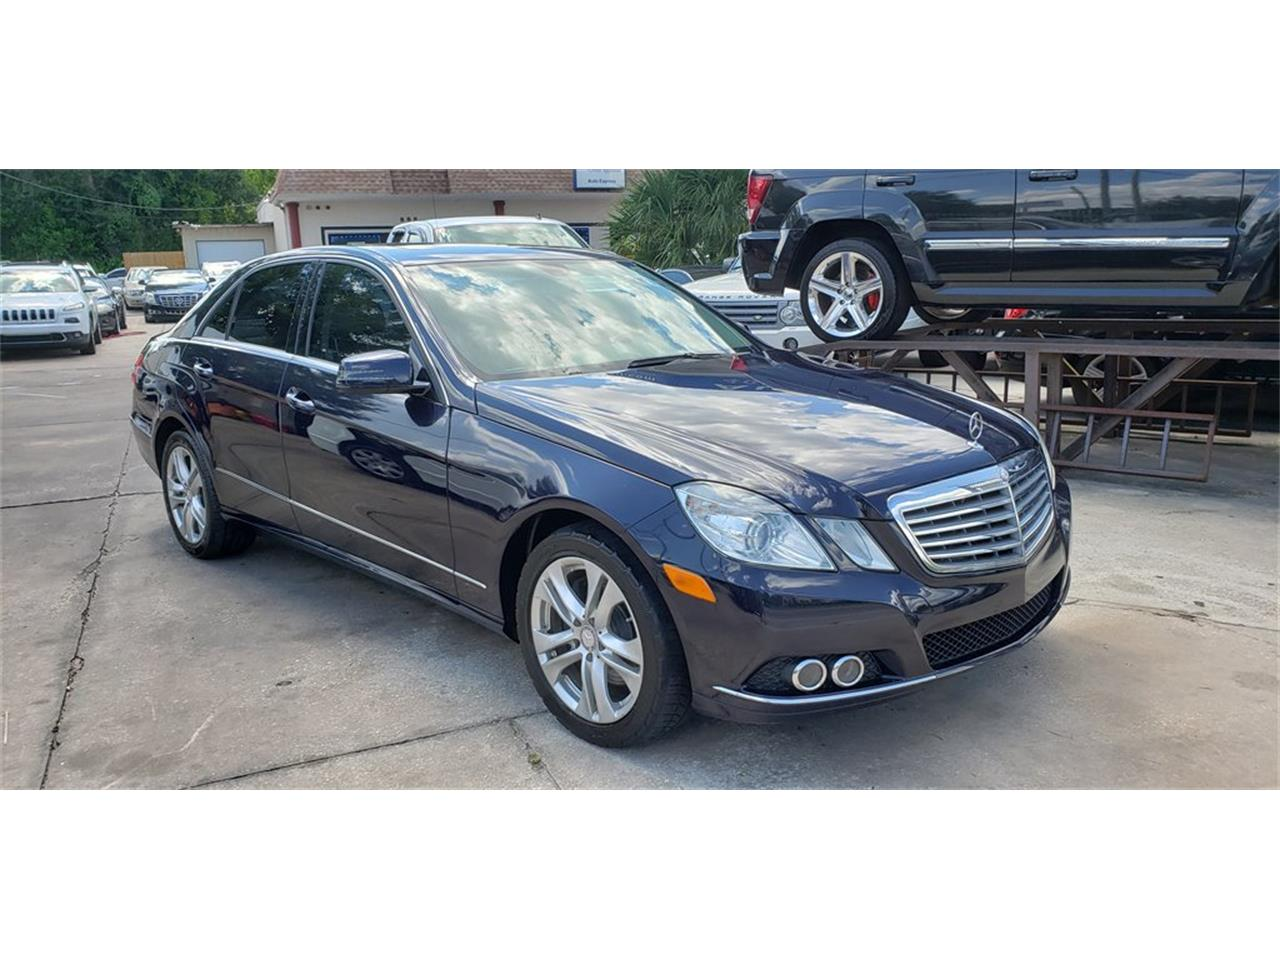 for sale 2011 mercedes-benz e-class in orlando, florida cars - orlando, fl at geebo